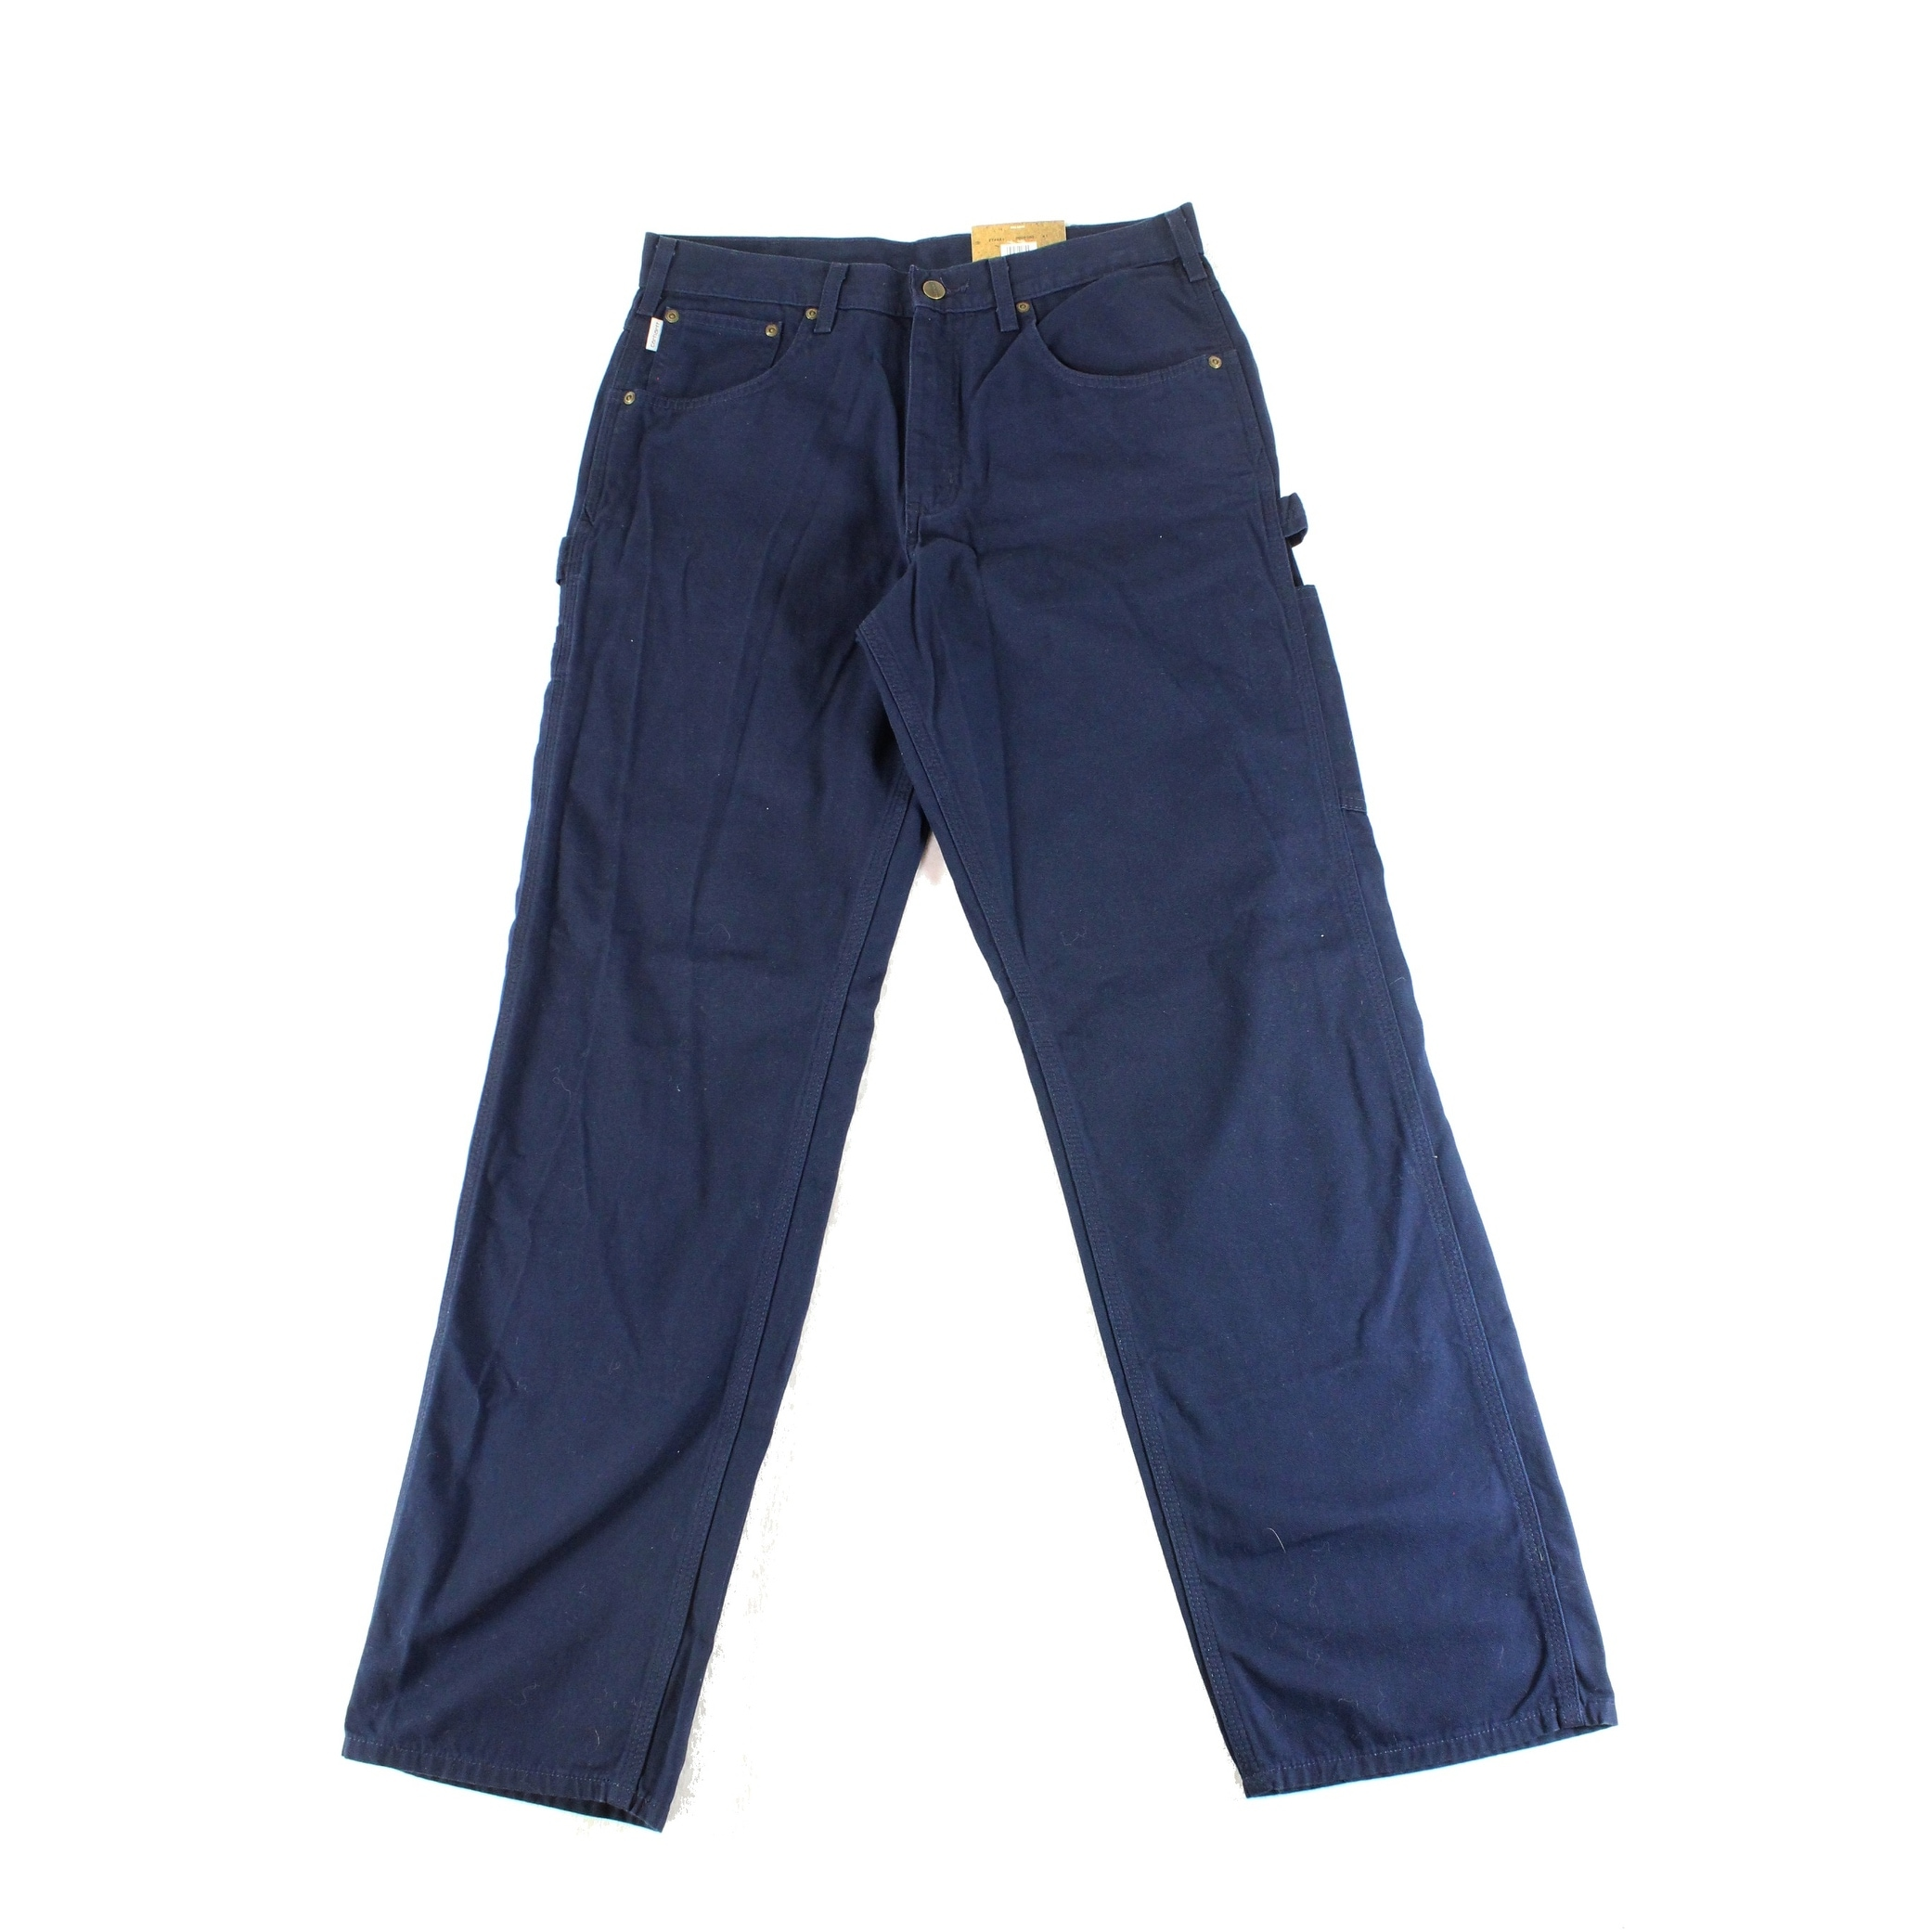 f5b8b341b7 Shop Carhartt Blue Mens Size 32X32 Loose Fit Canvas Carpenter Jeans - Free  Shipping On Orders Over $45 - Overstock - 27315968